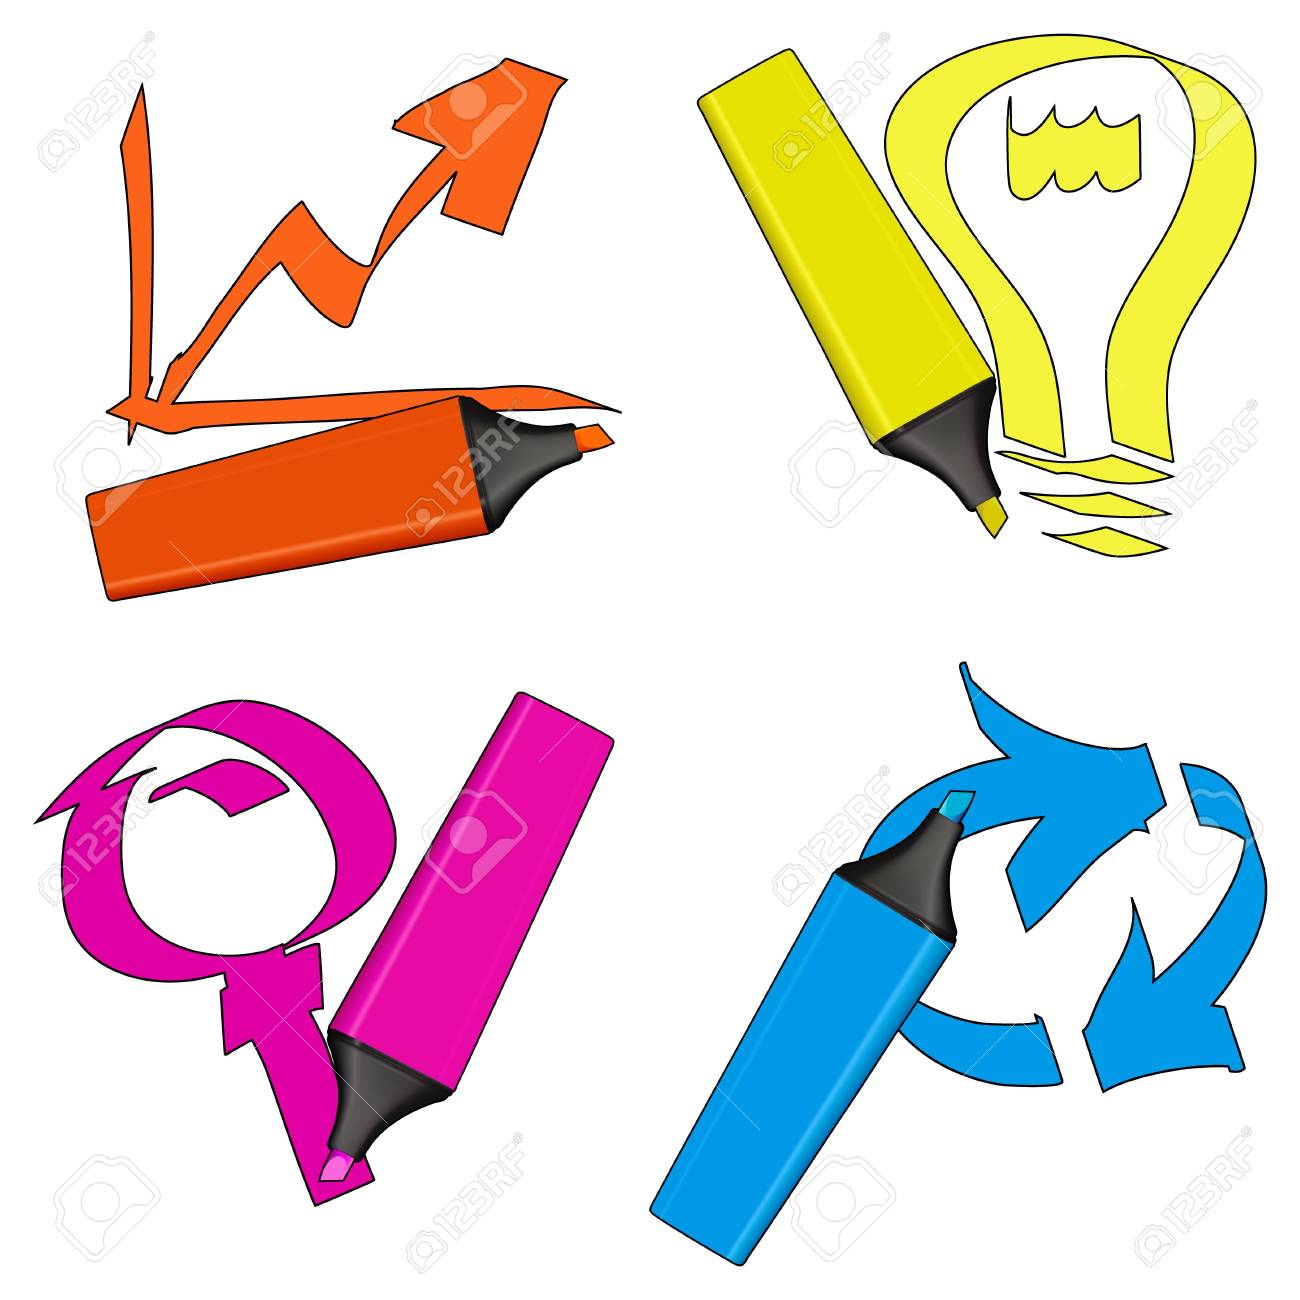 Highlighter pens with color symbols isolated over a white background. Stock Photo - 2713667